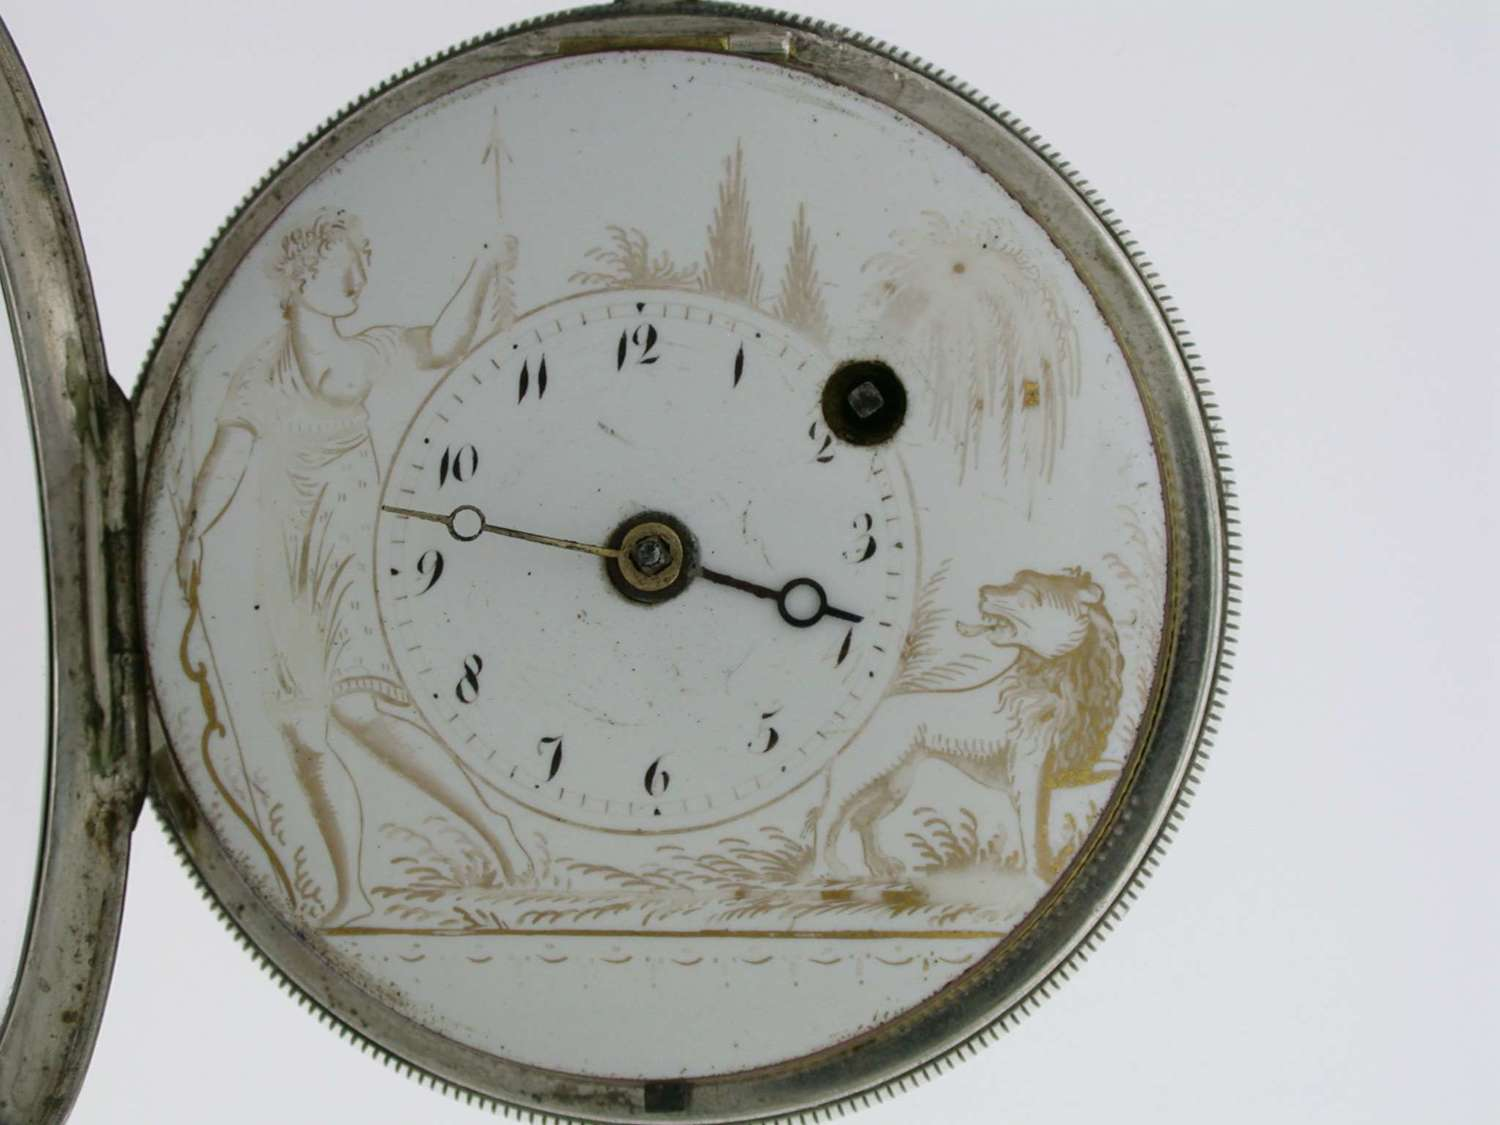 Silver Verge Painted Dial English / London  Pocket Watch 1800